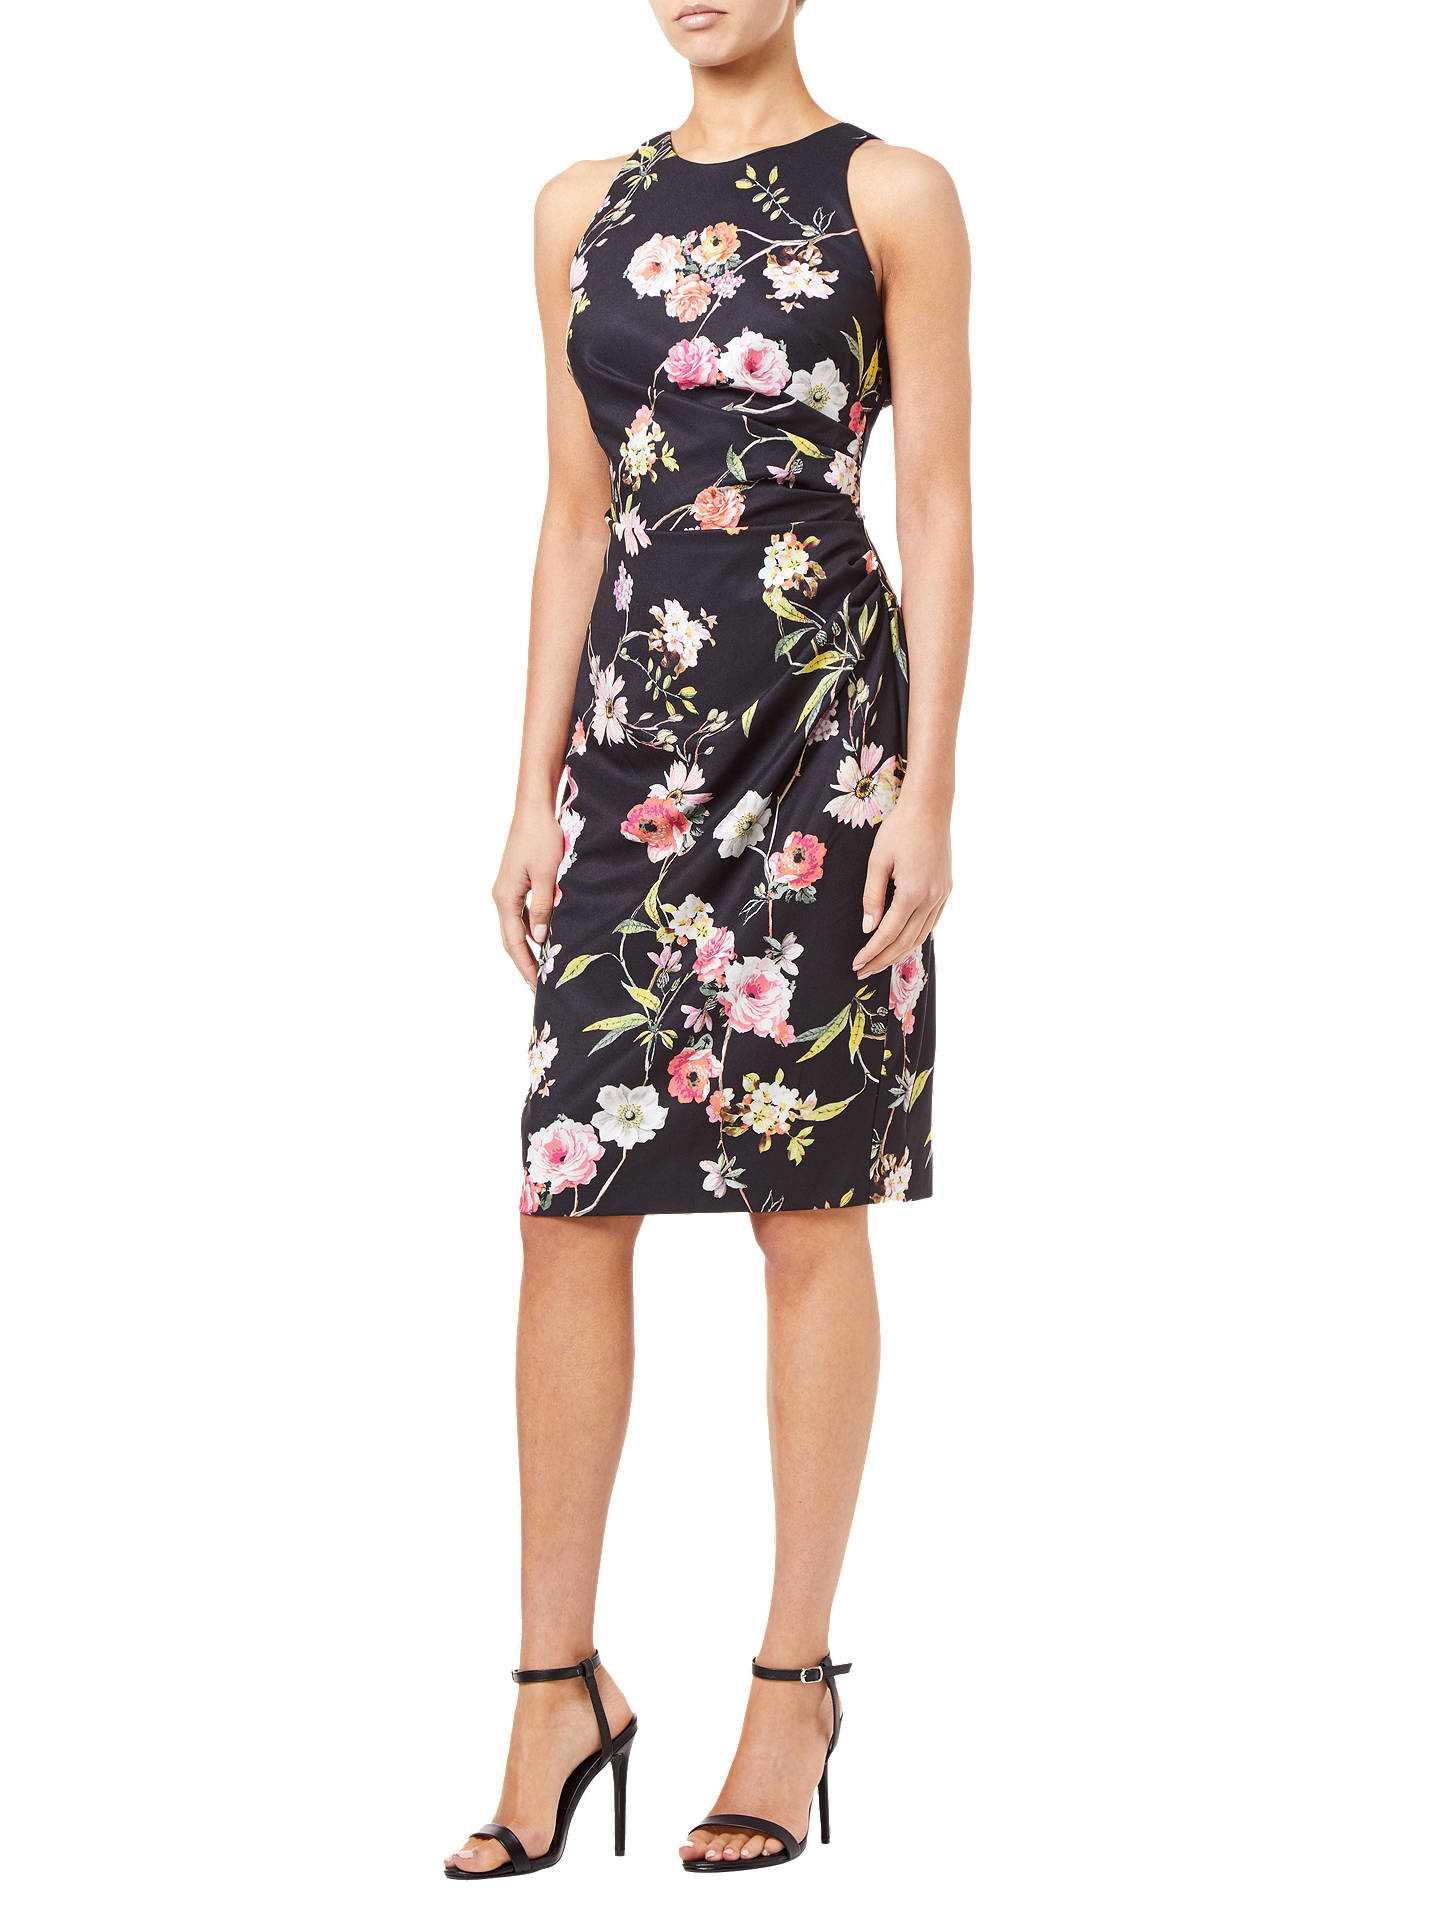 Buy Adrianna Papell Sheath Ruche Floral Dress, Black/Multi, 8 Online at johnlewis.com